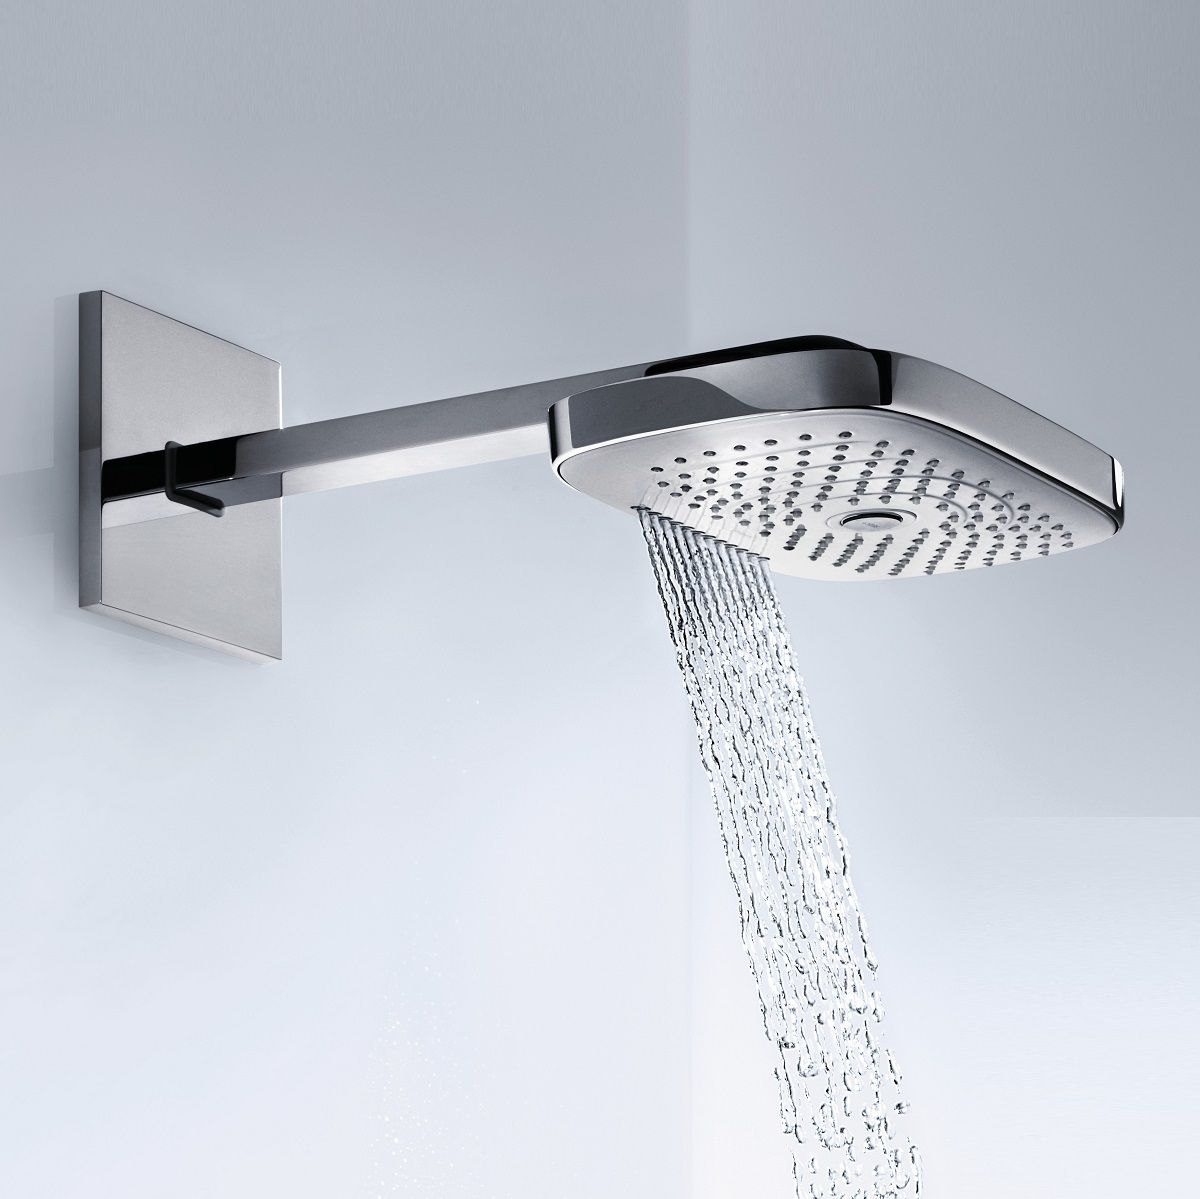 hansgrohe raindance select e 300 3jet shower head with arm. Black Bedroom Furniture Sets. Home Design Ideas